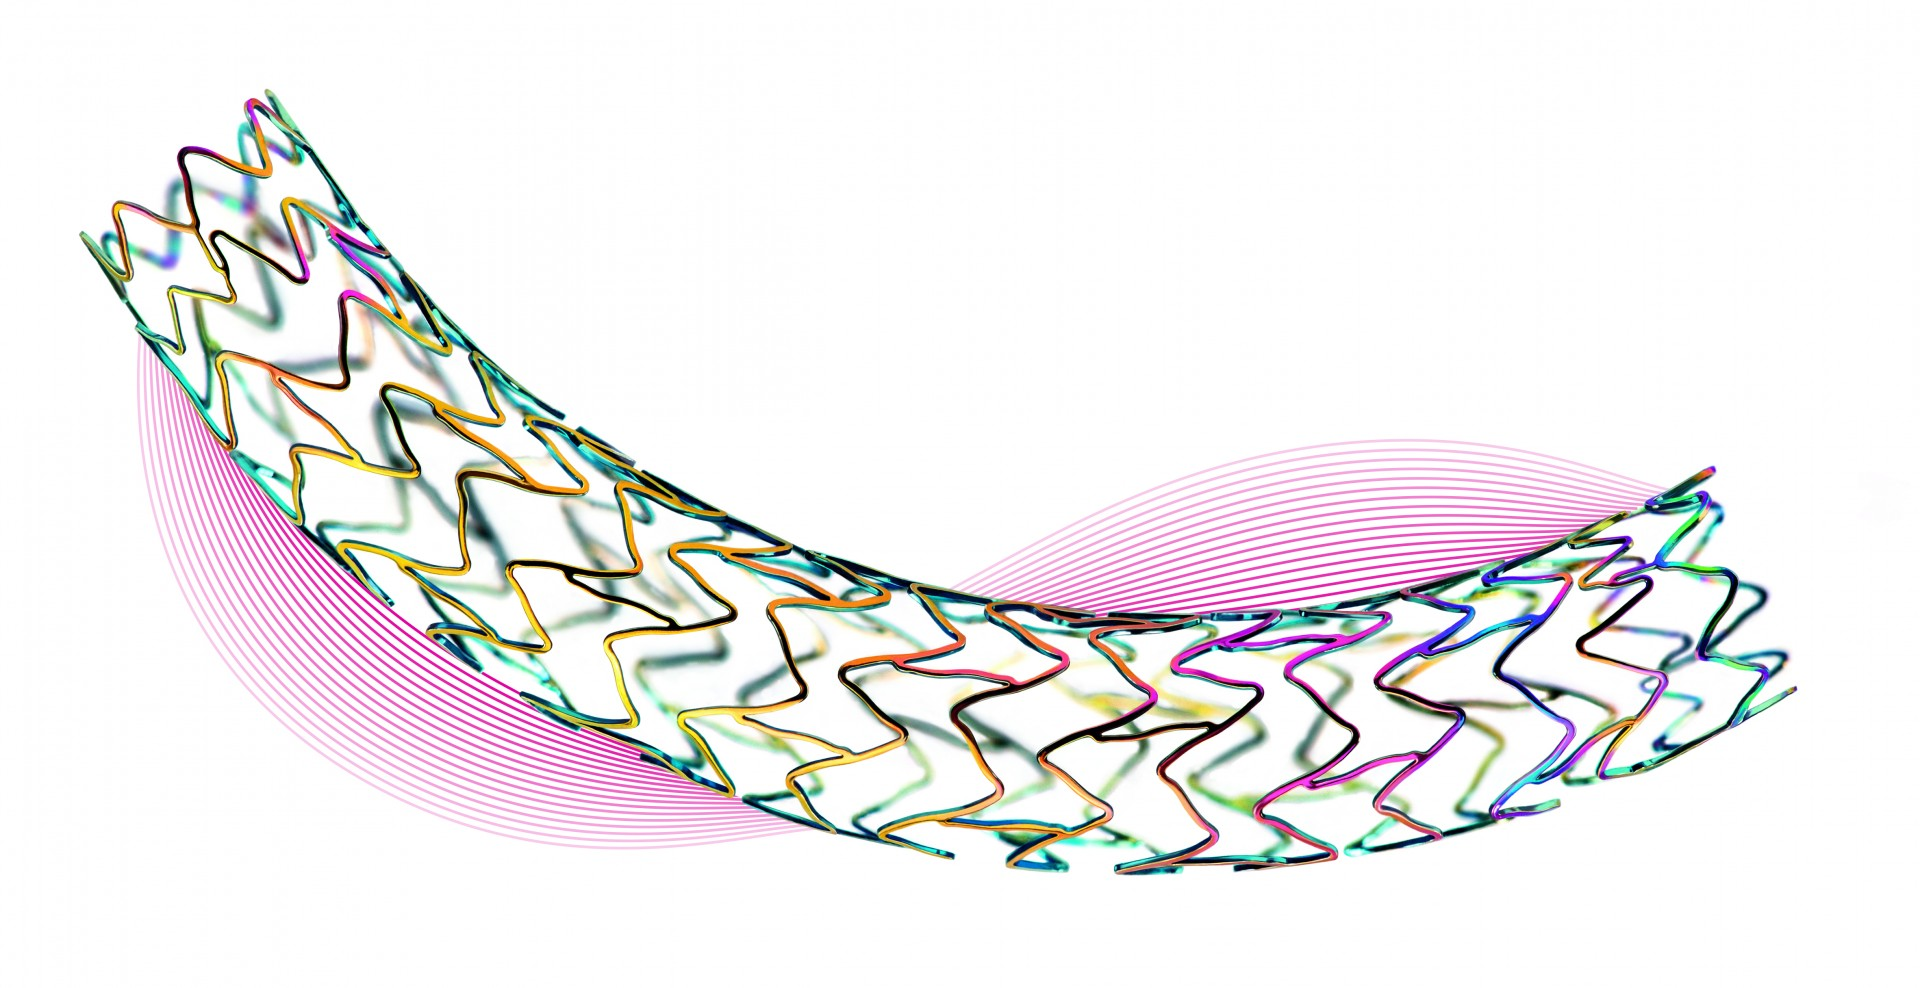 Orsiro Drug-Eluting Stent